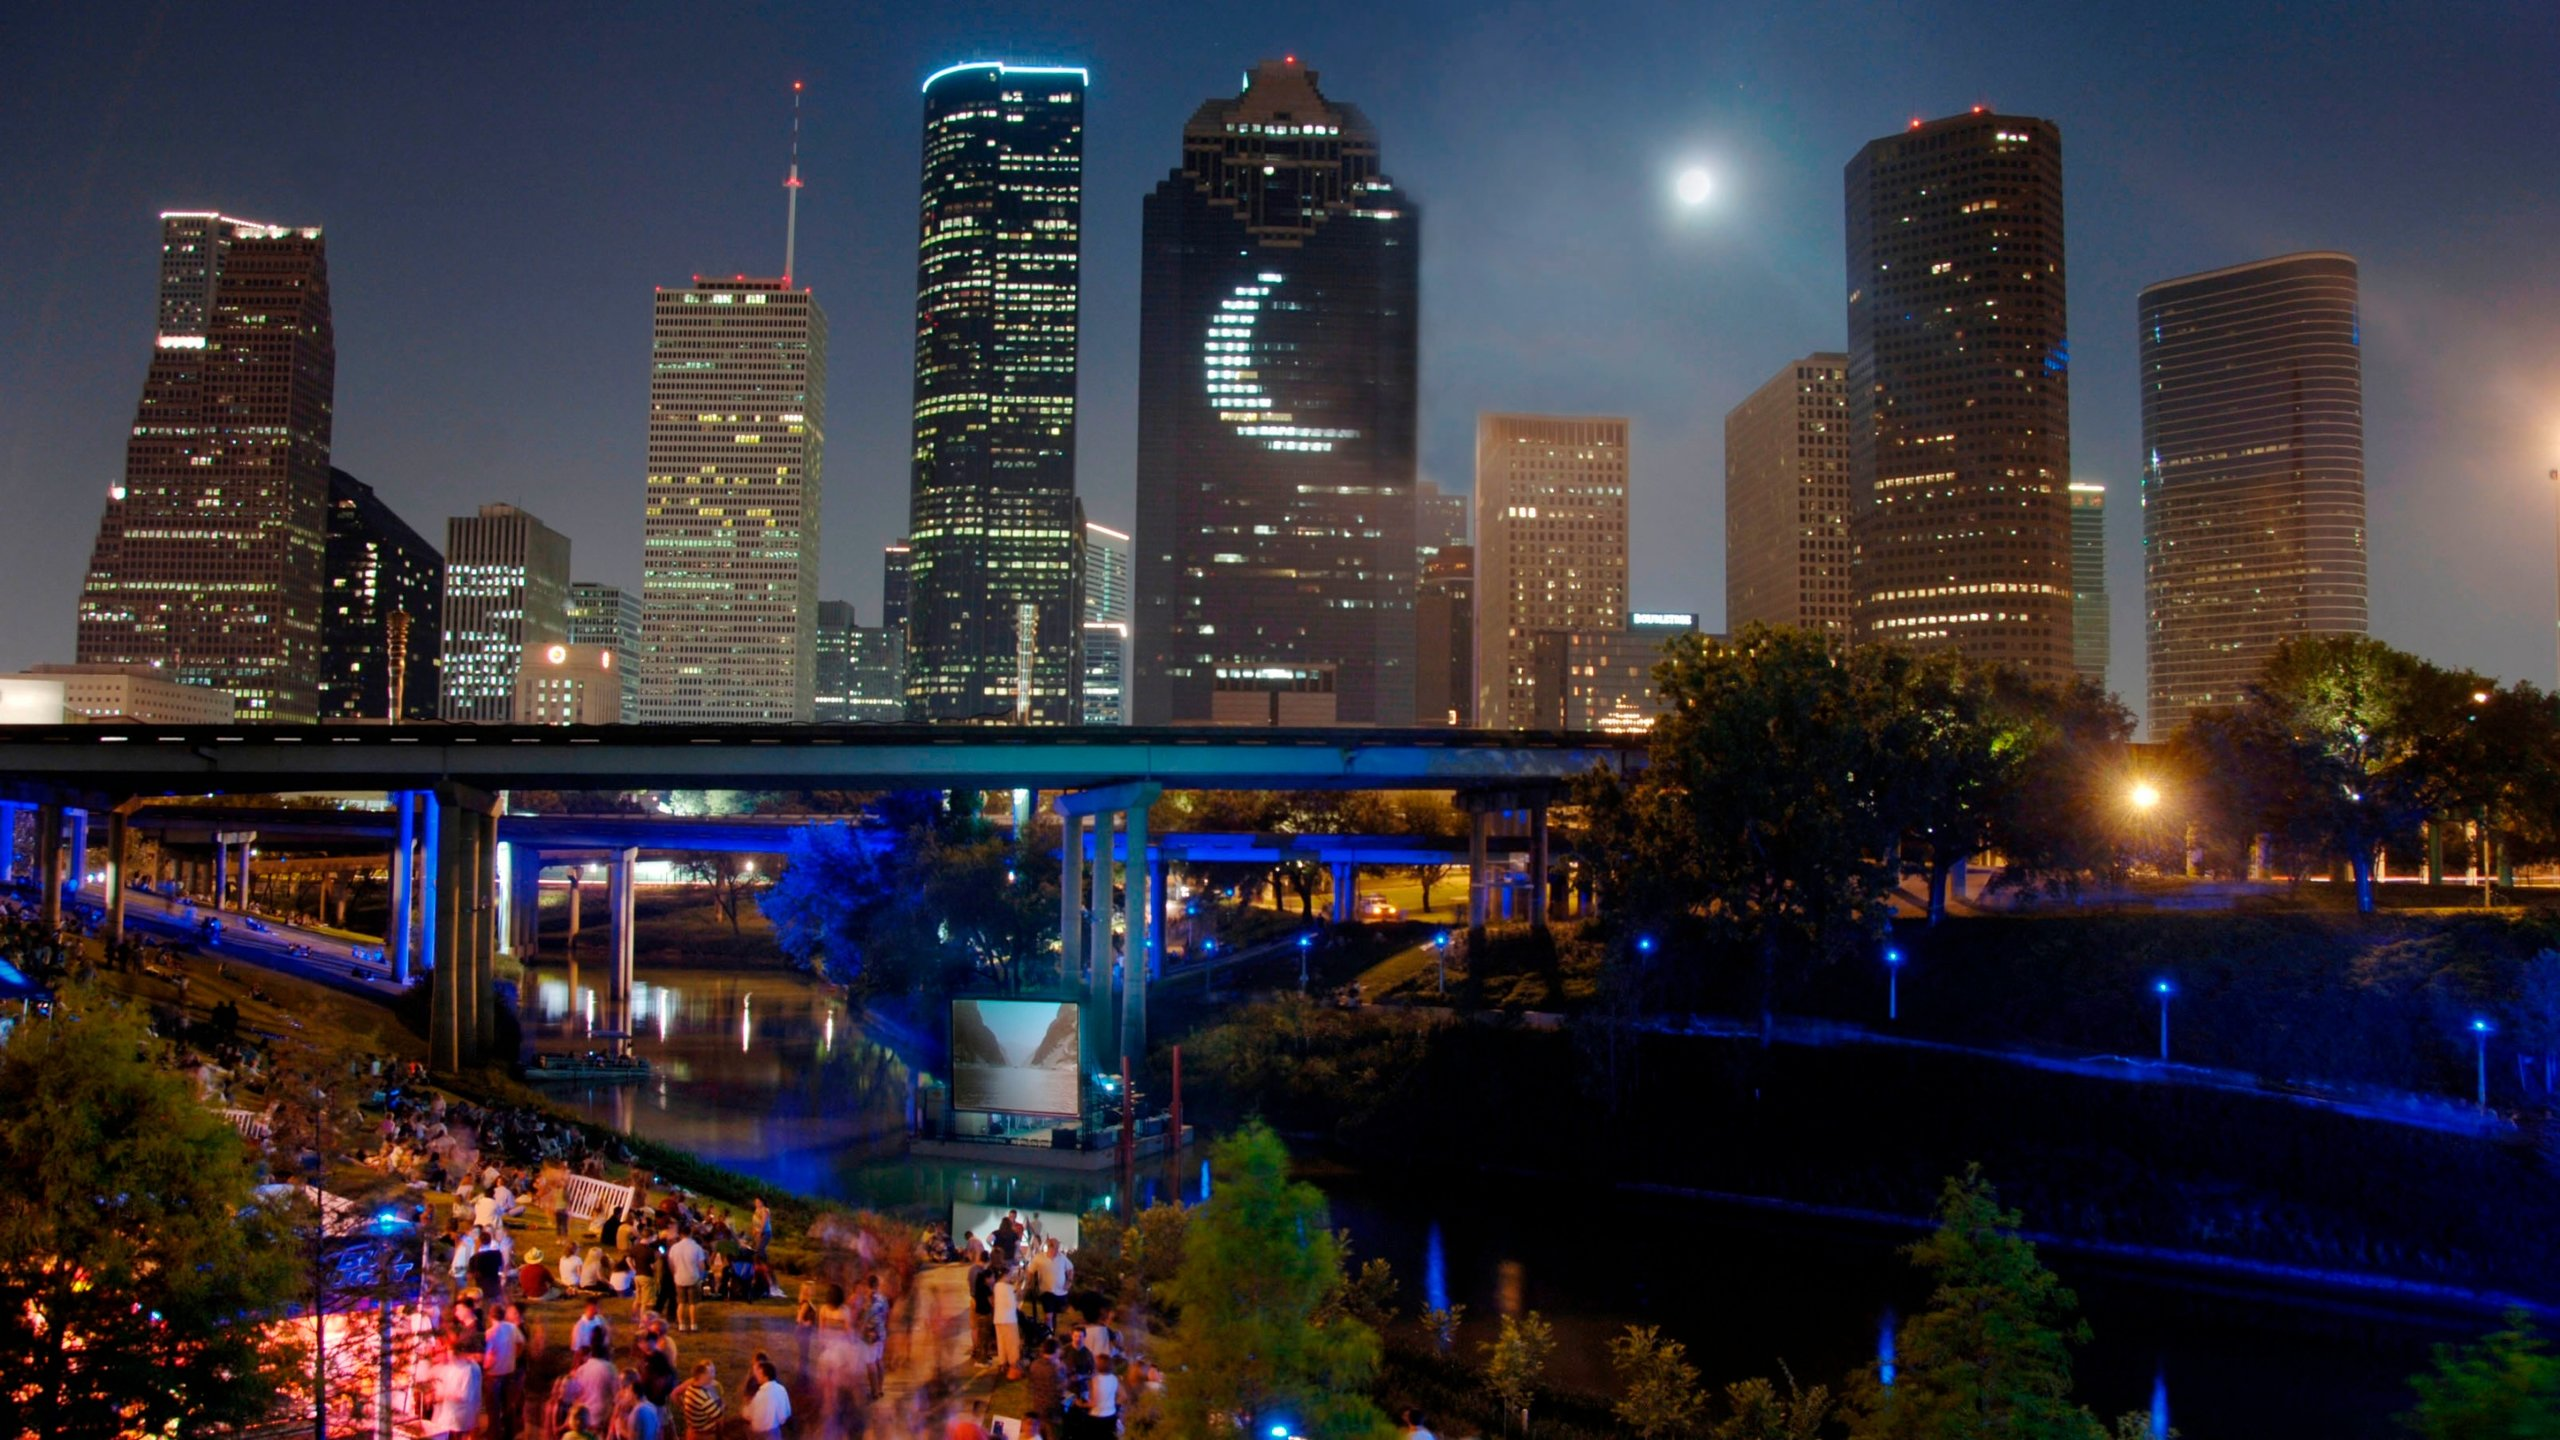 Houston Central Business District, Houston, Texas, United States of America